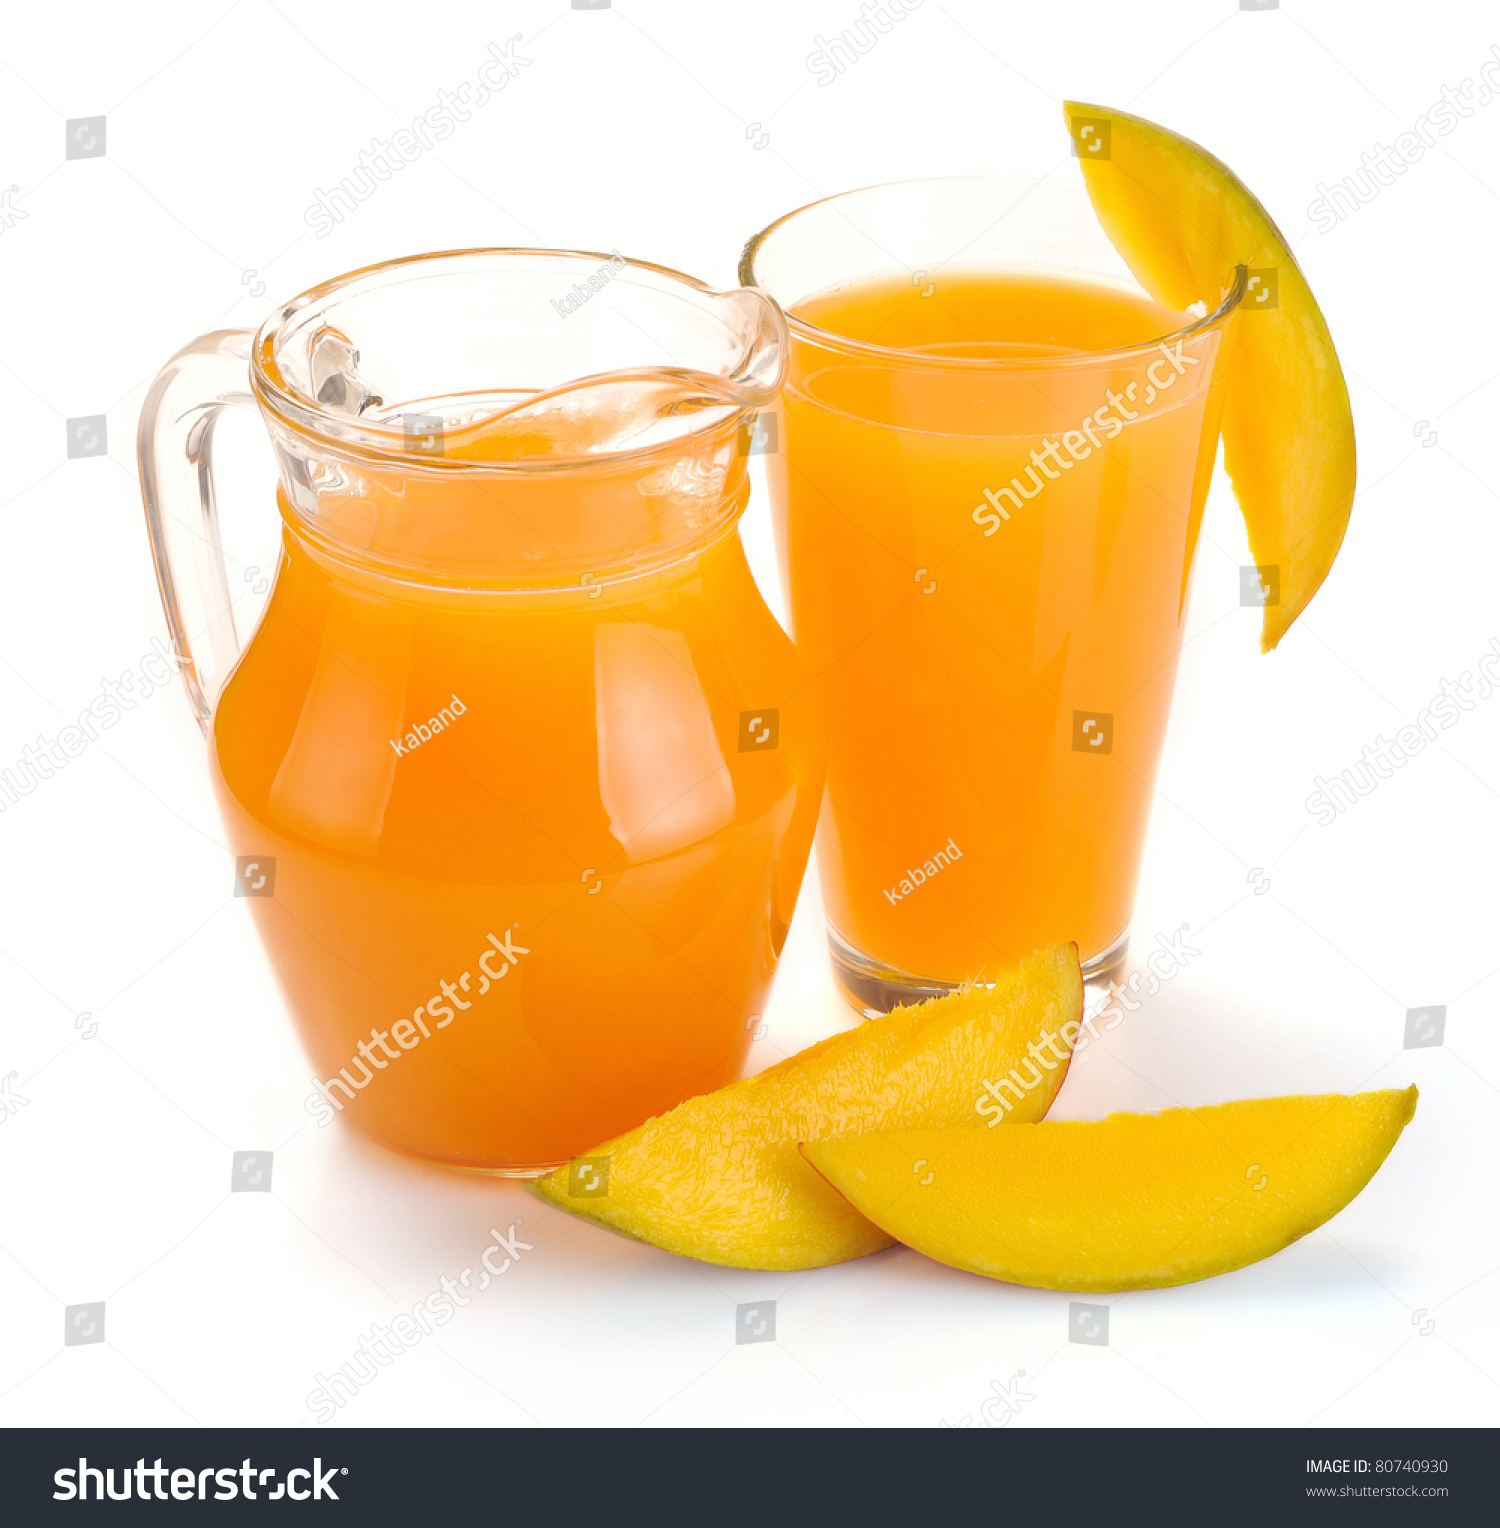 Mango Juice In A Jug And A Glass Of Fruit 20160323cuttingmangovickywasik1g